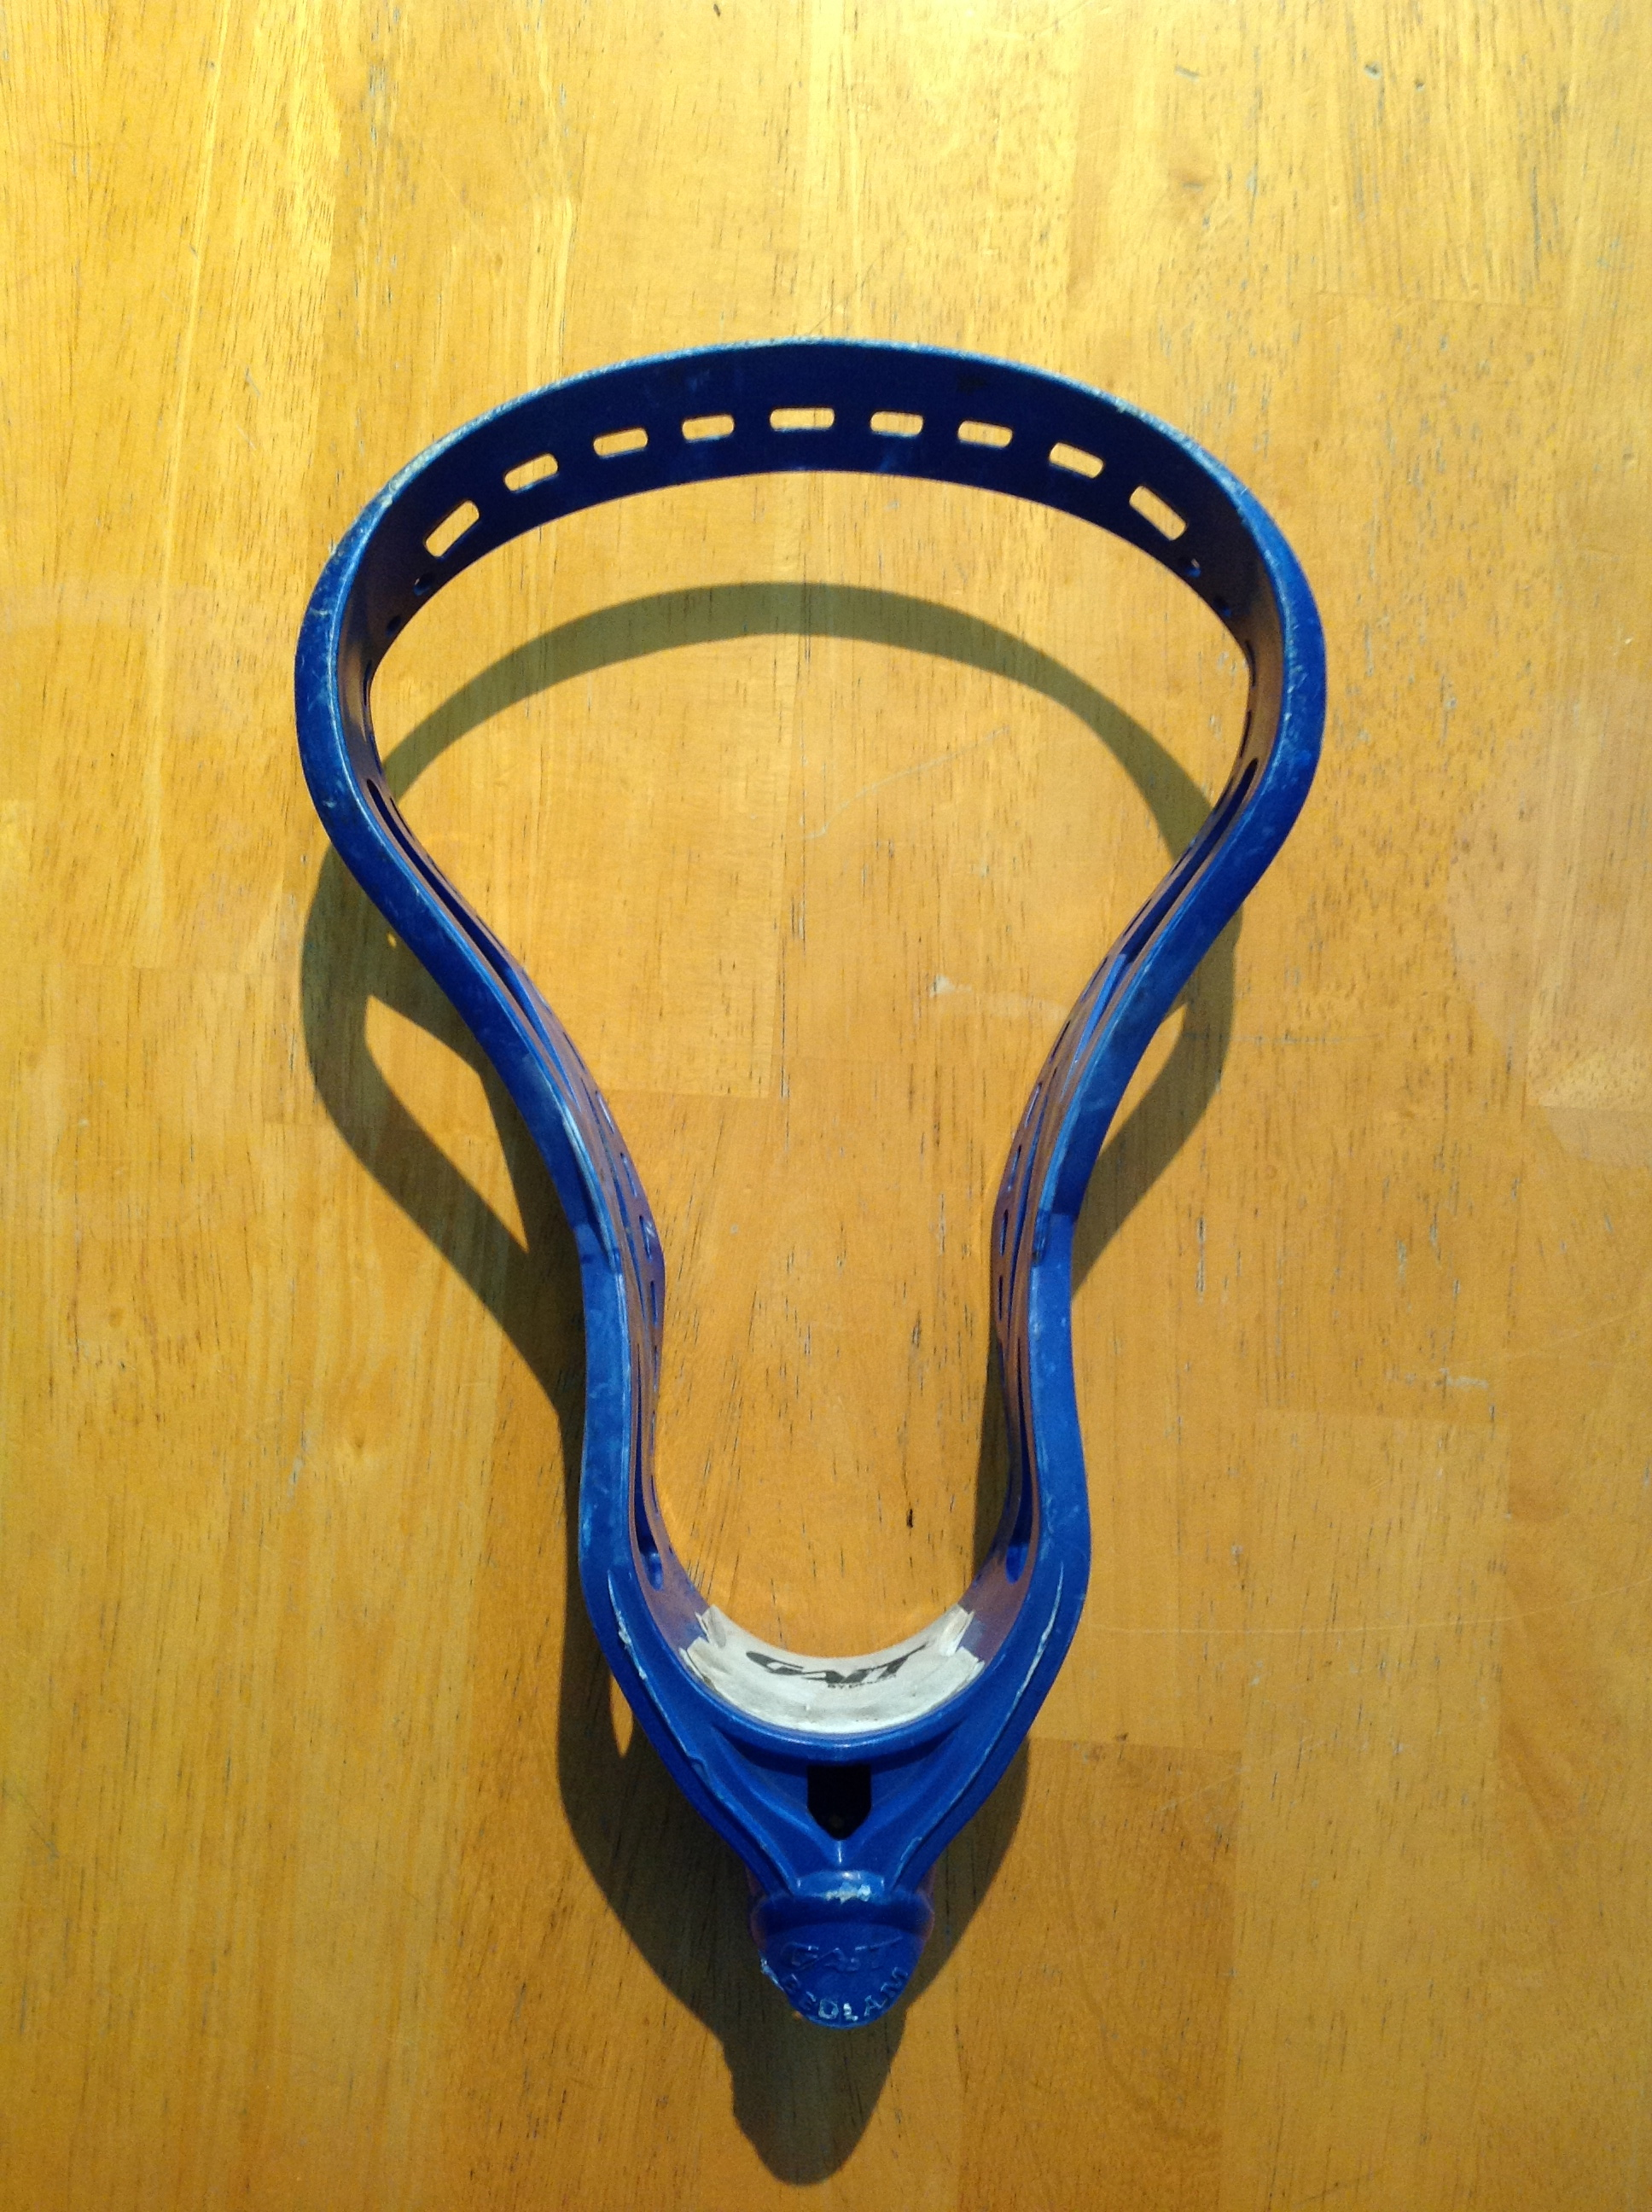 Picture of How to Pinch a Lacrosse Head